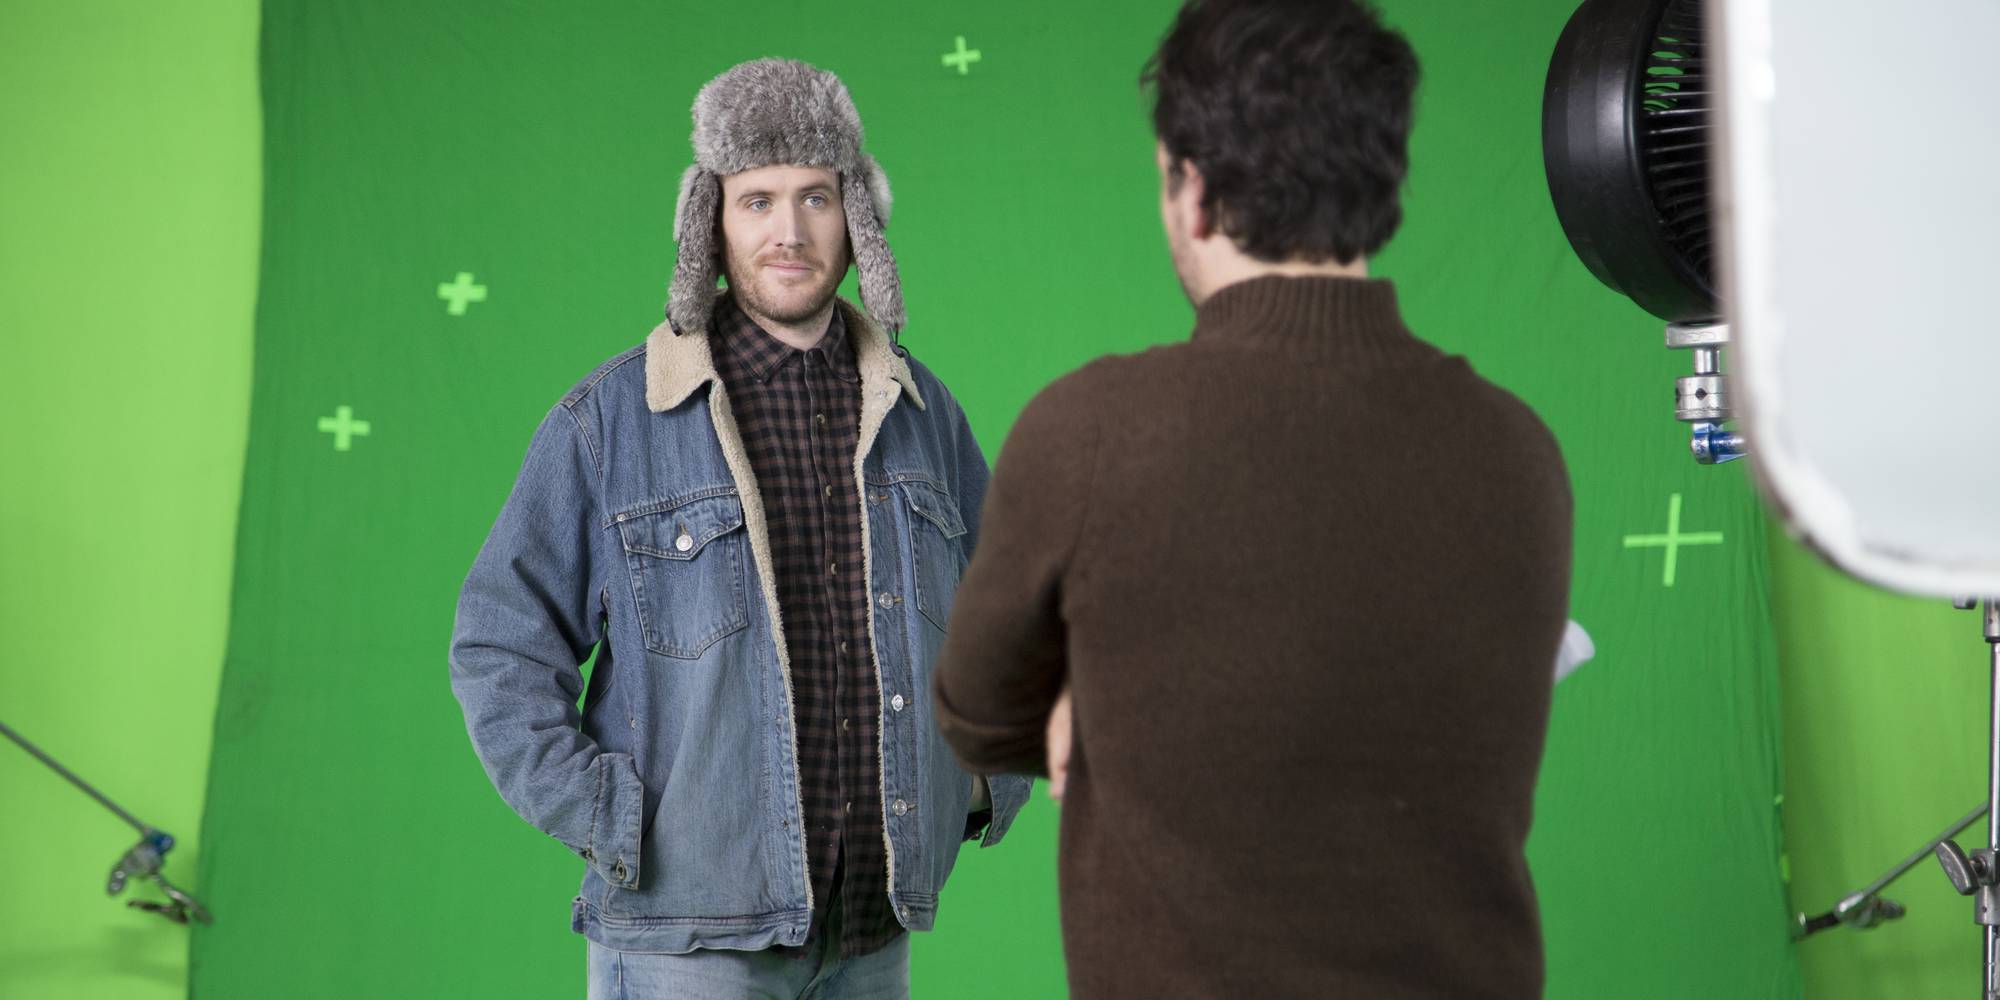 Director Geoff Manton discusses the scene with the talented WooHoo Guy